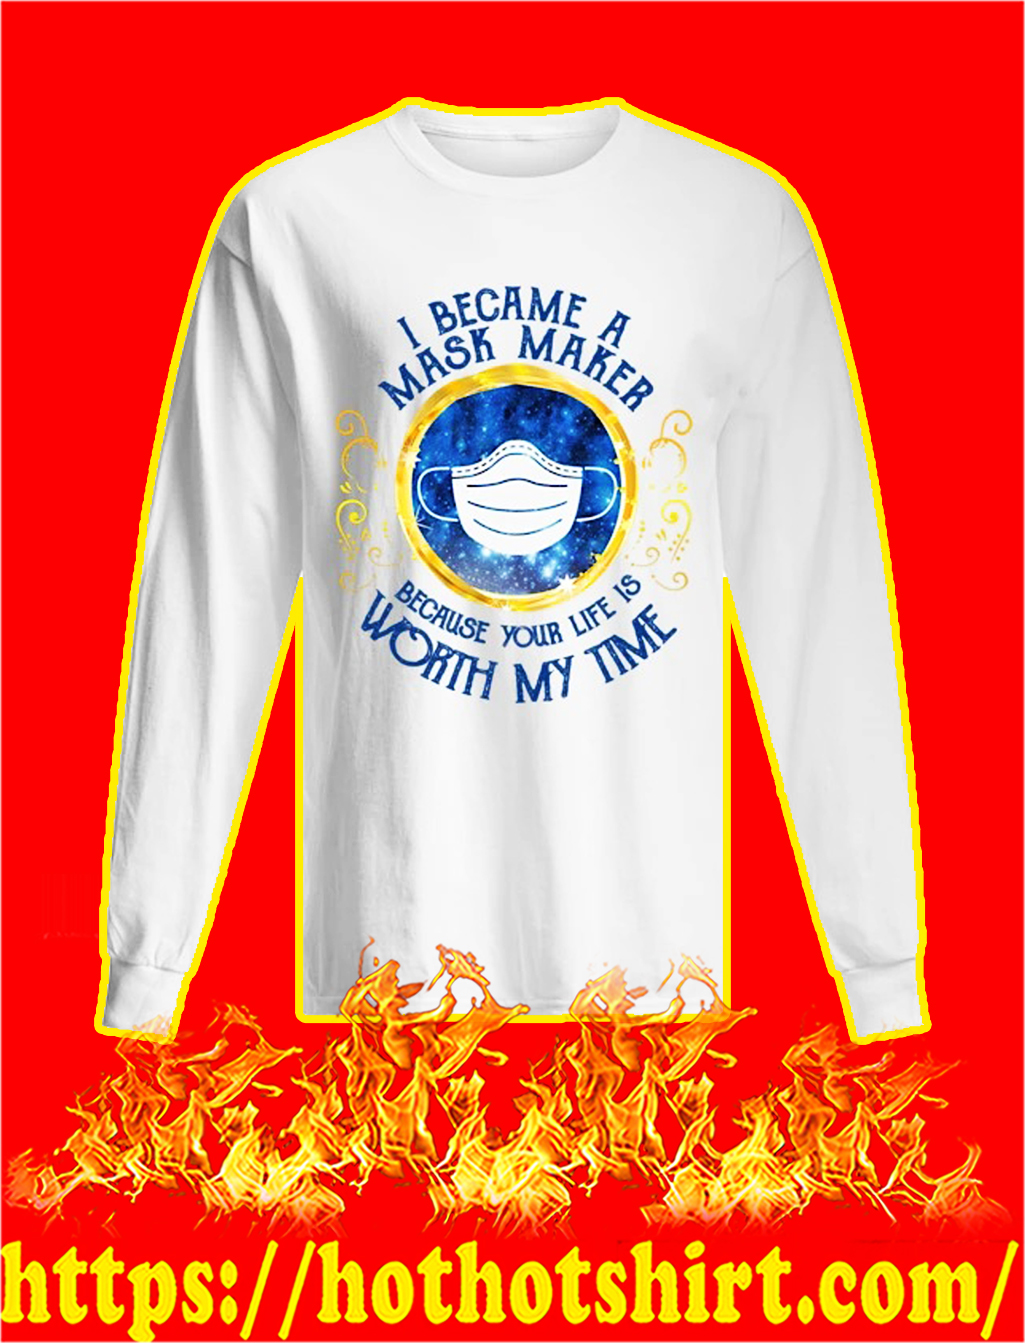 I became a mask maker because your life is worth my time longsleeve tee